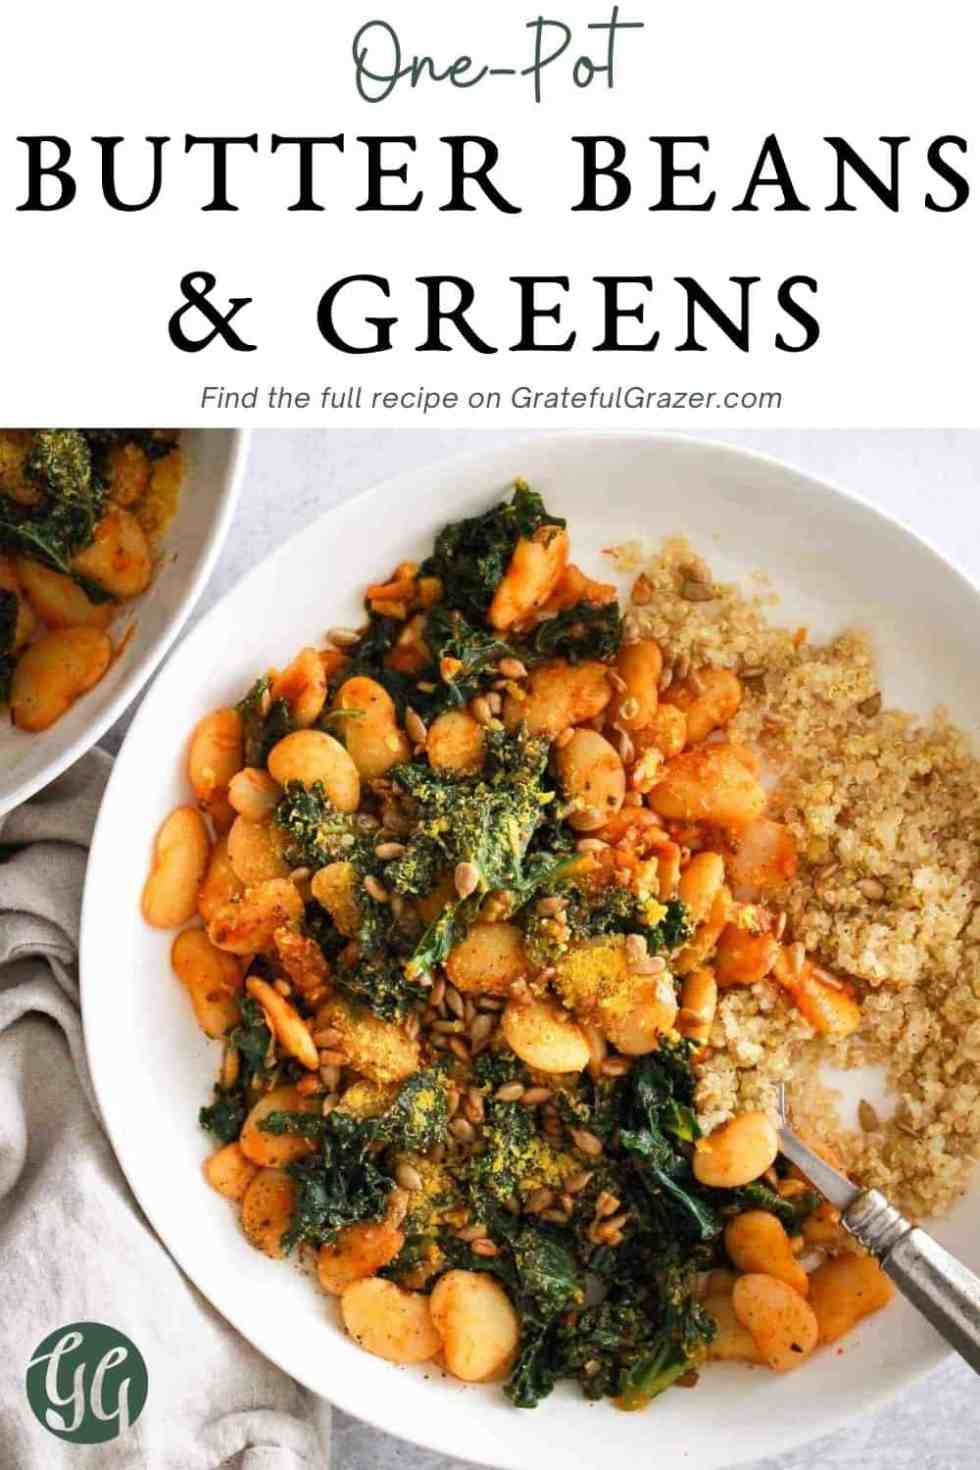 """Beans and kale grain bowl with text reading, """"One-Pot Butter Beans & Greens - Find the full recipe on GratefulGrazer.com"""""""